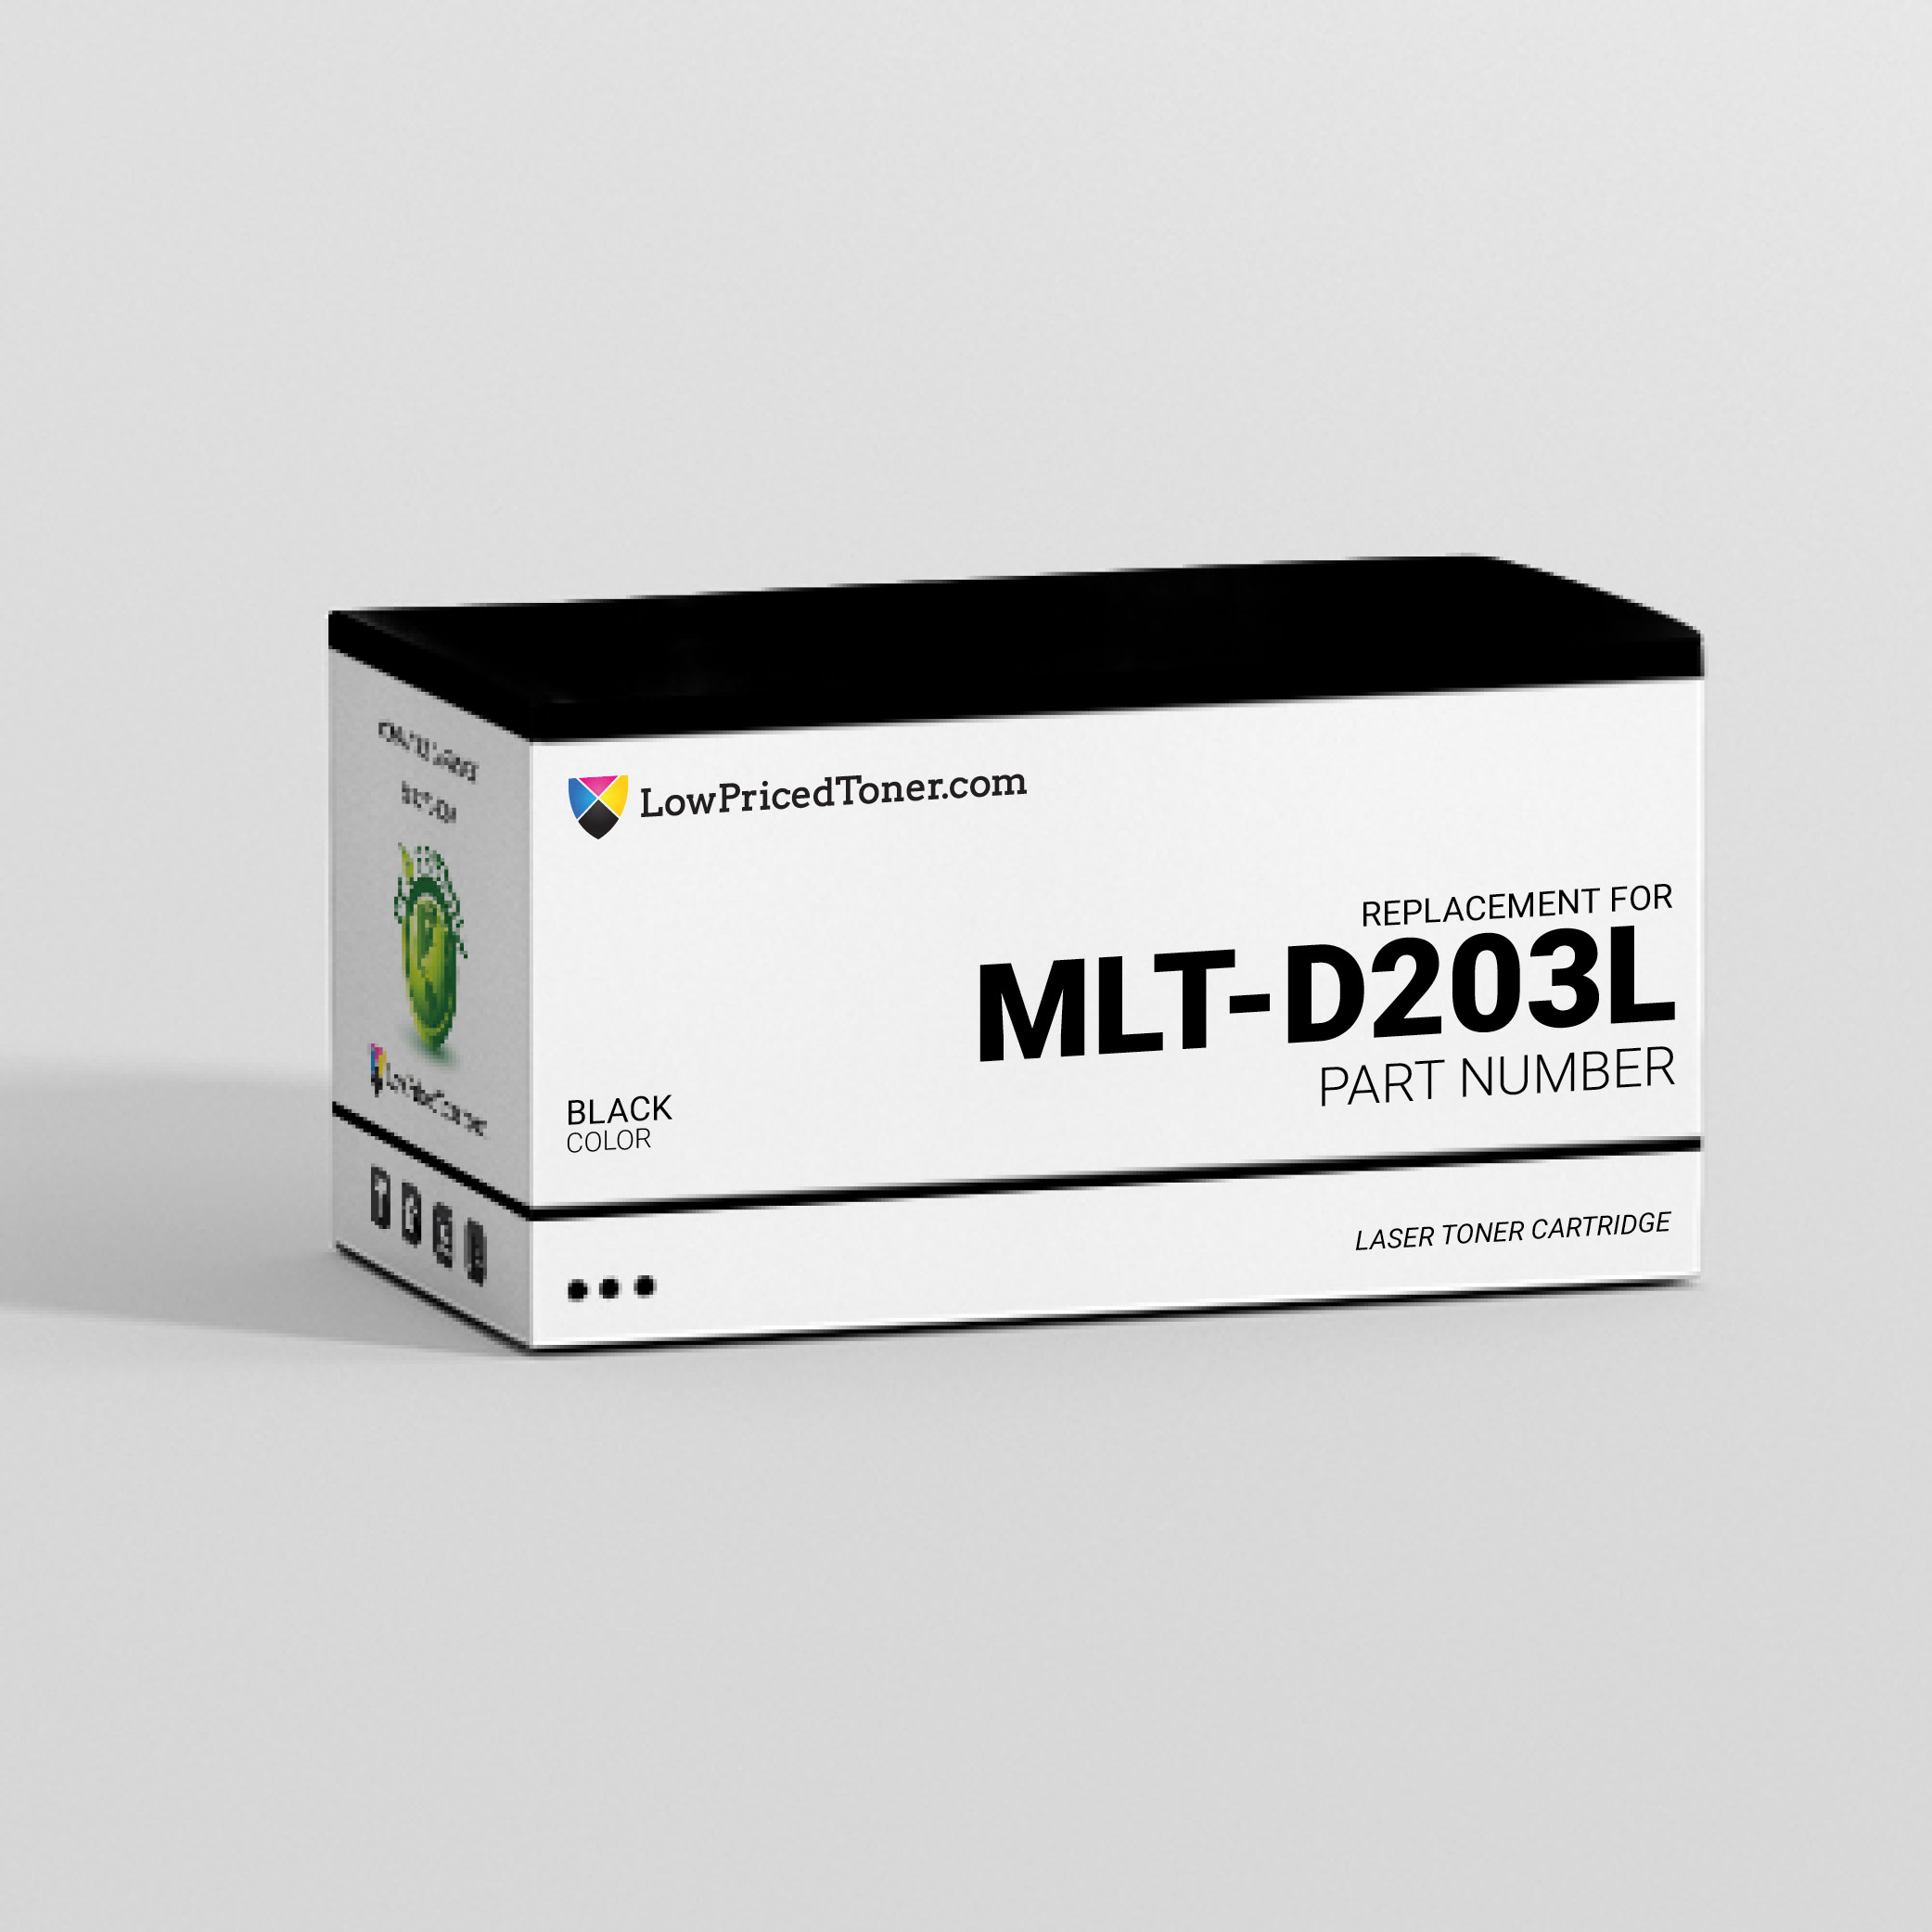 Samsung MLT-D203L Compatible Black Laser Toner Cartridge